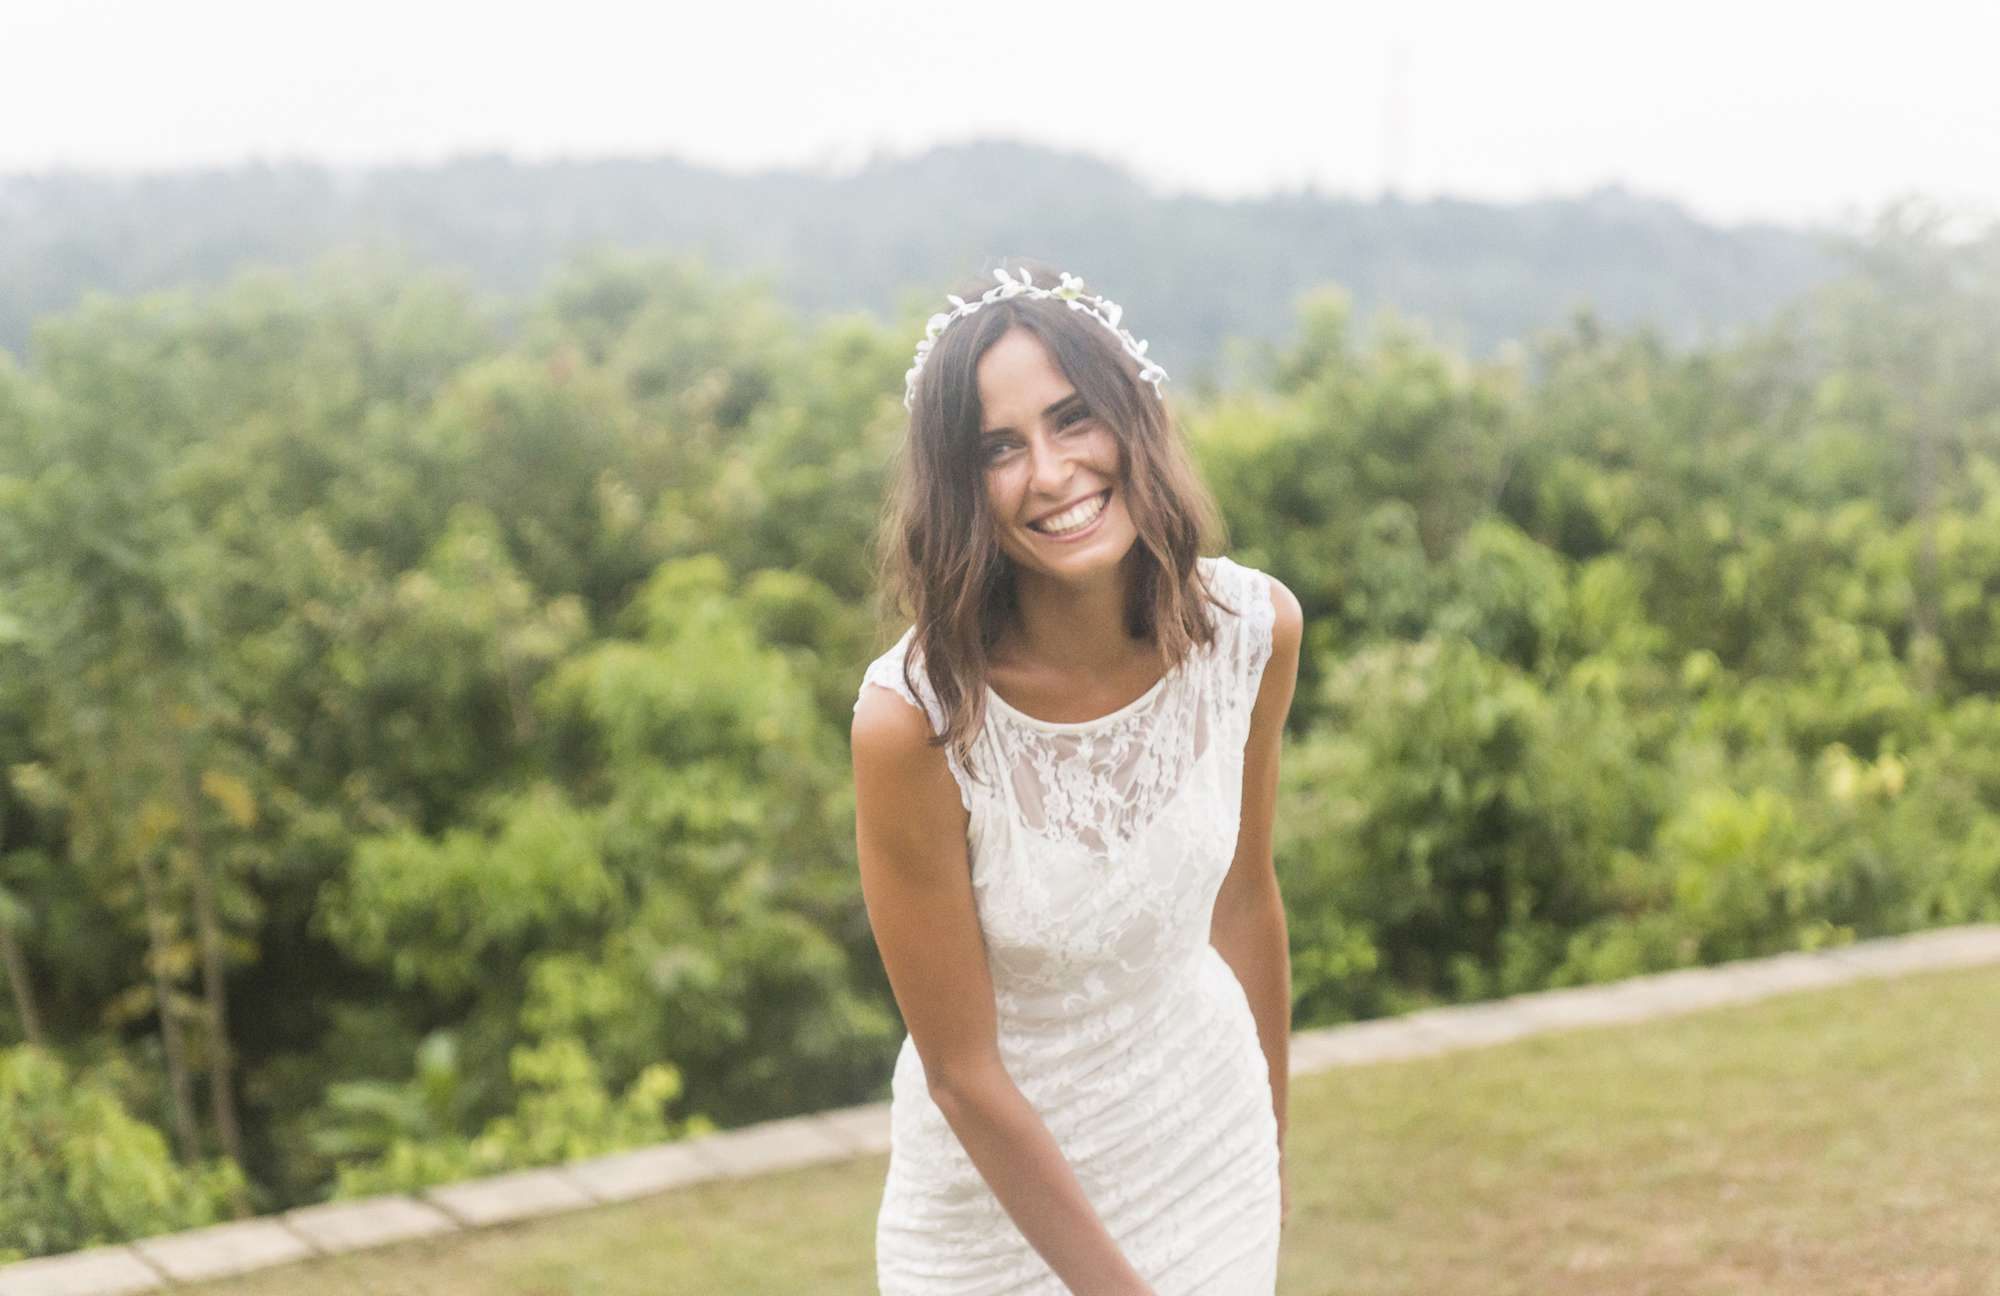 Smiling bride standing outside